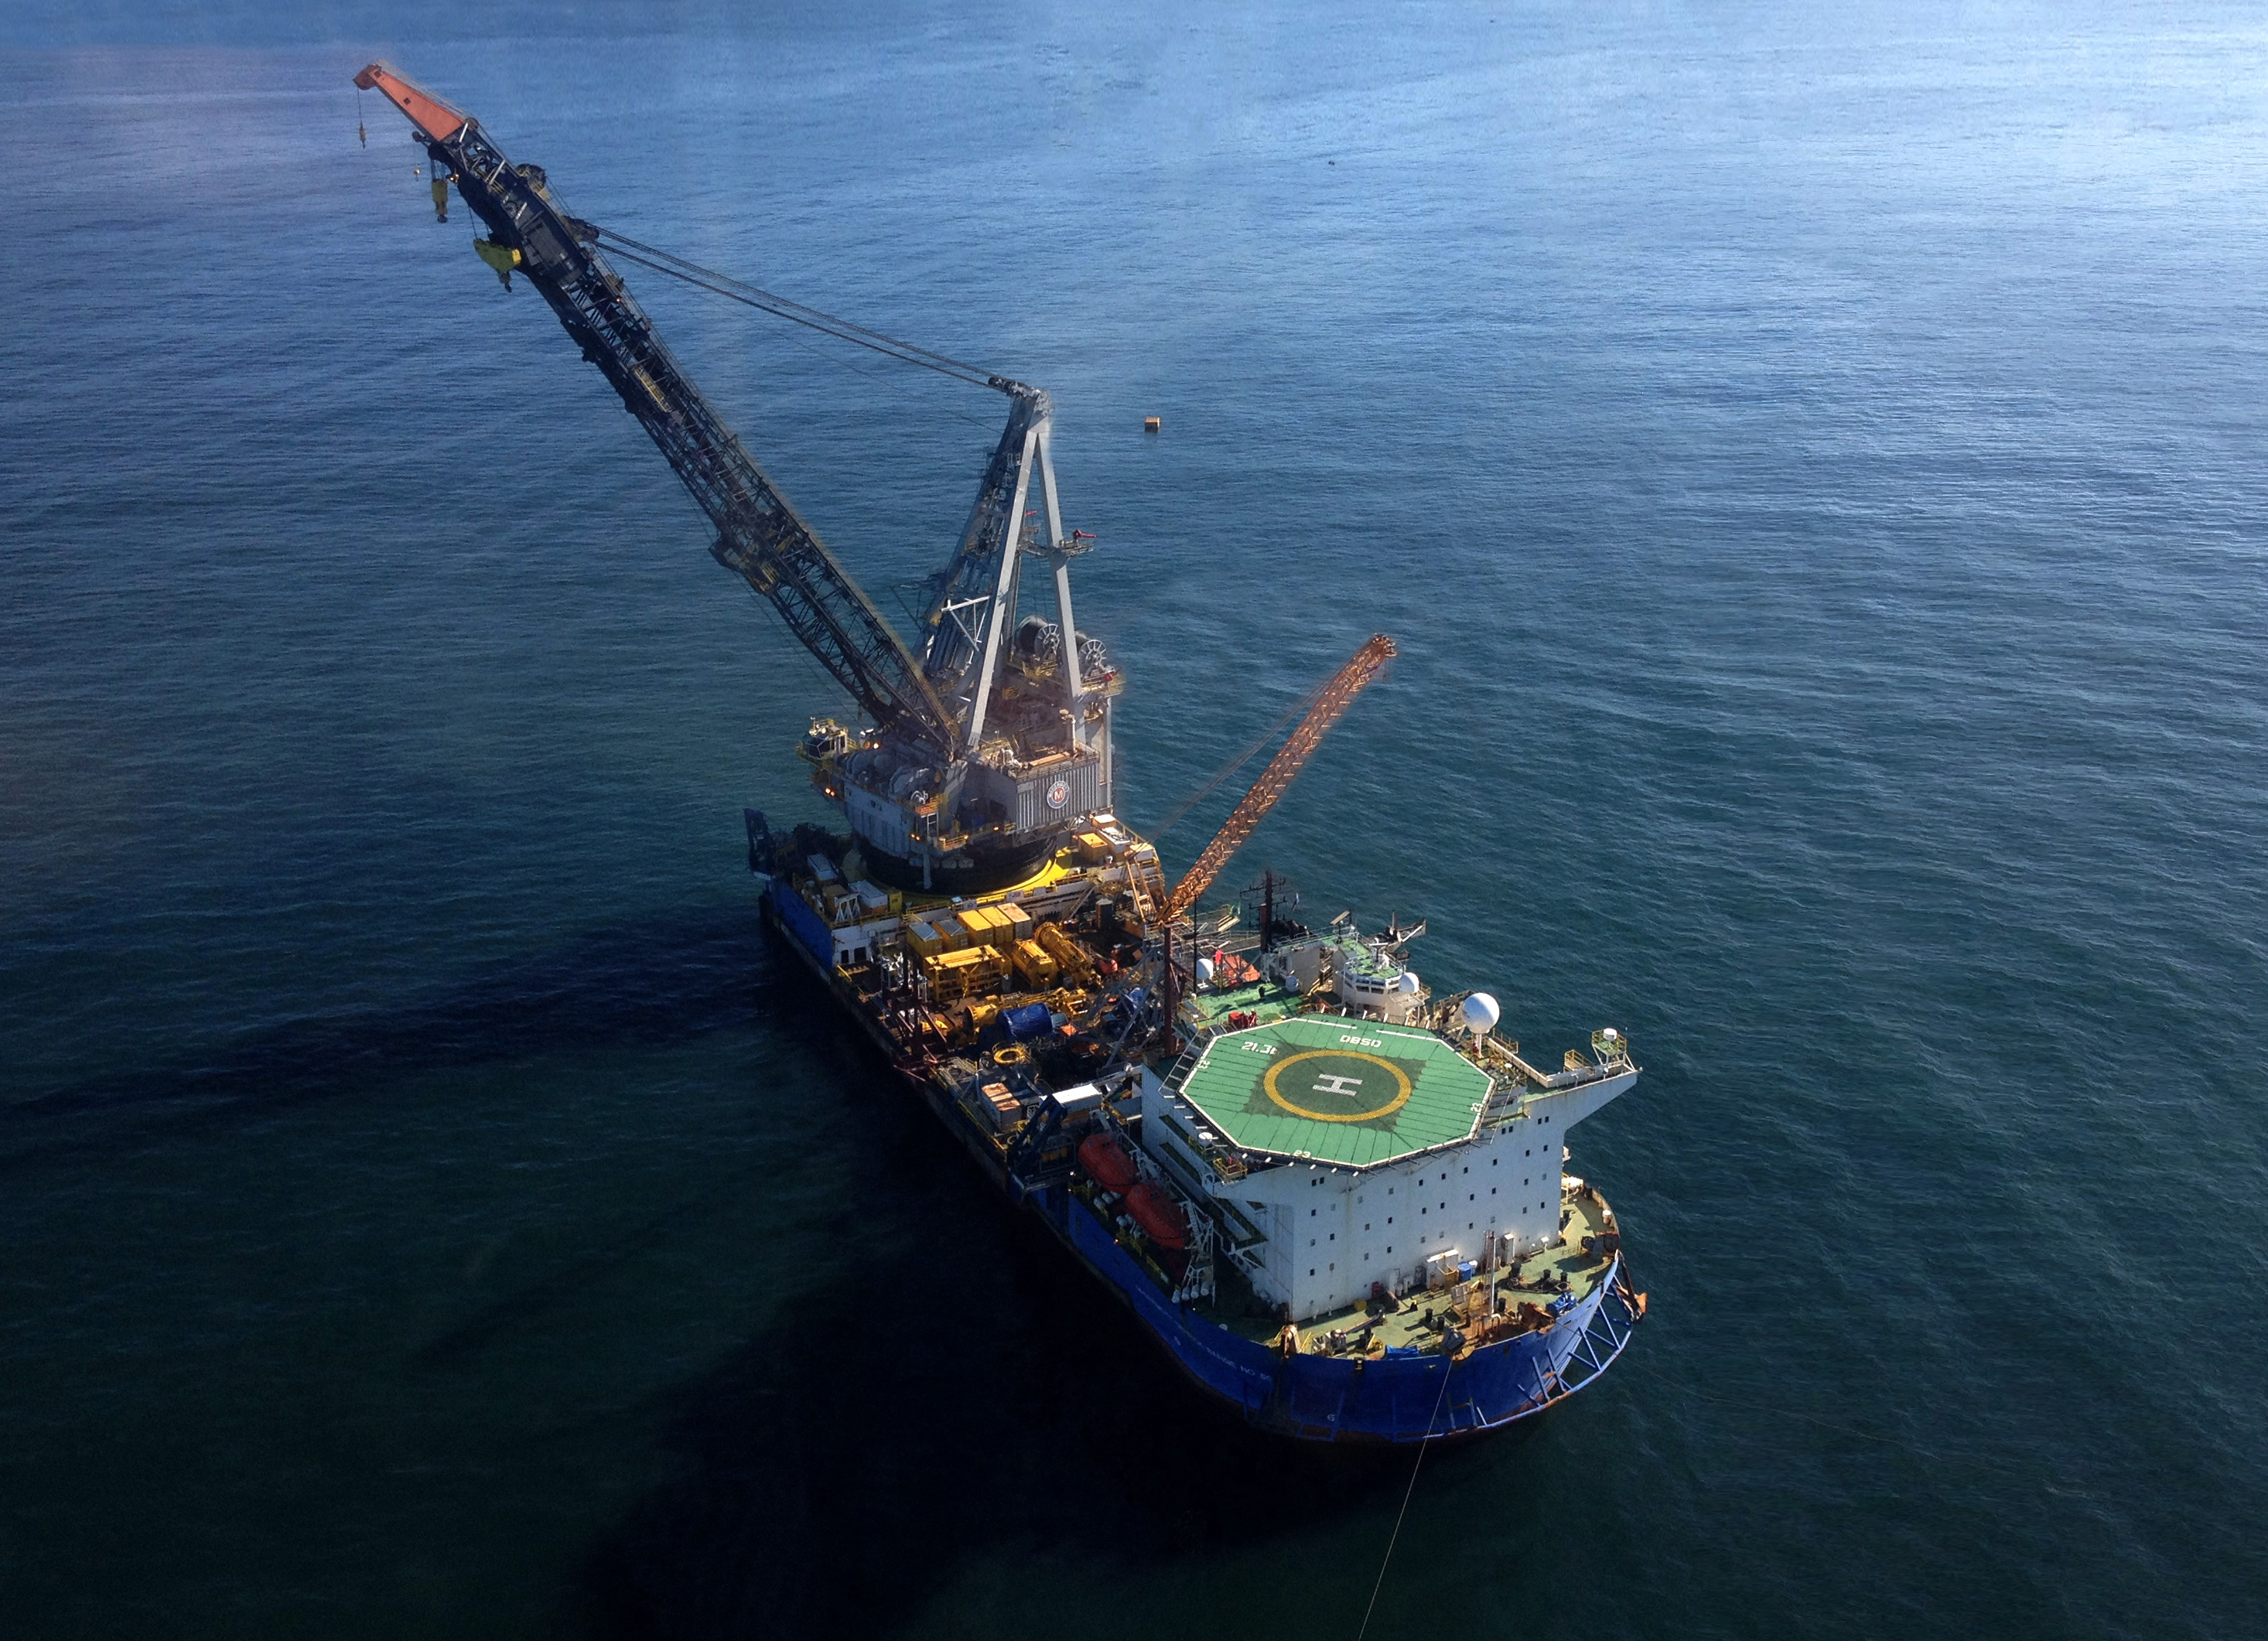 The McDermott heavy-lift vessel, Derrick Barge 50, will install the Megalodon platform in 391 feet of water, over an existing well site in the Gulf of Mexico. (Photo: Business Wire)